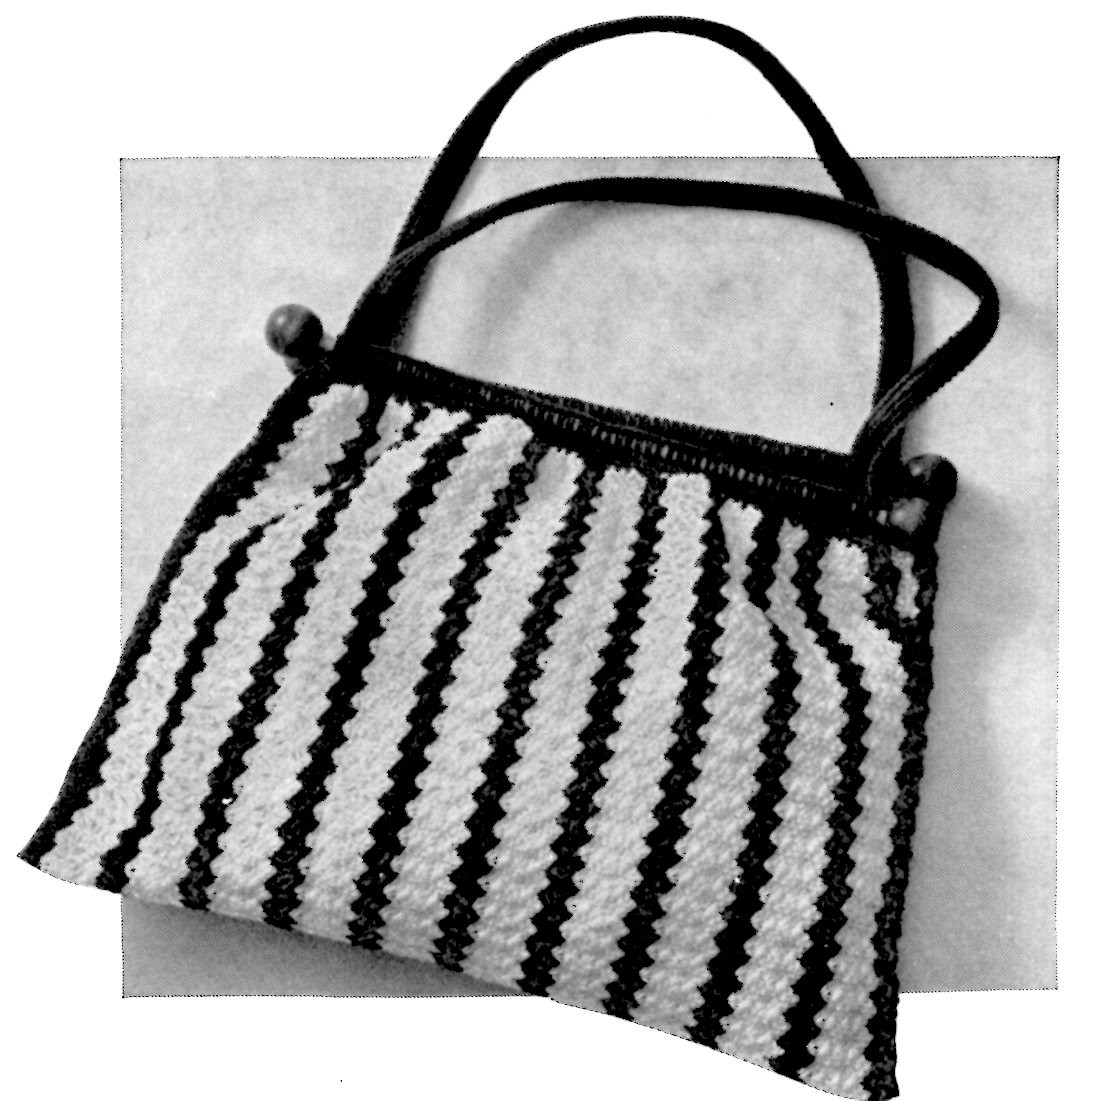 Crochet Bag Pattern Fresh Free Crochet Bag Pattern to Hold Your Knitting A Crocheted Of Great 50 Pictures Crochet Bag Pattern